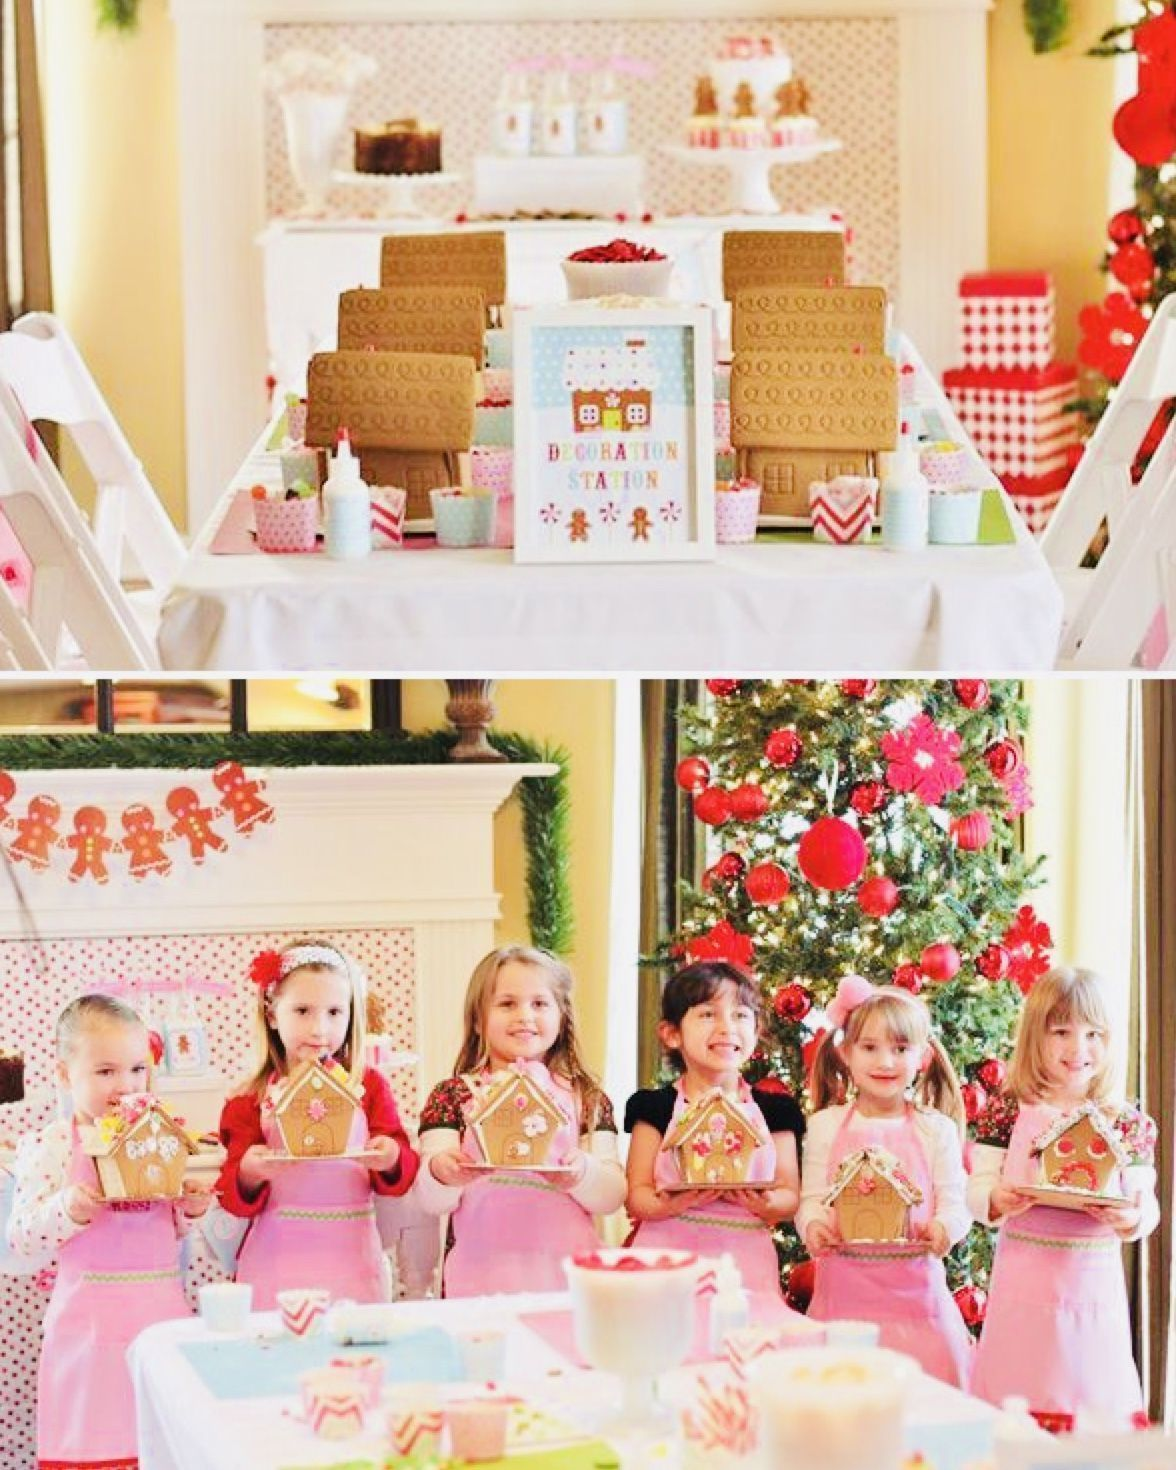 Lyfetymes Your Holiday Party Helper Plan Your Party In Seconds With Your All In 2020 Christmas Birthday Party Gingerbread House Parties Gingerbread House Decorations